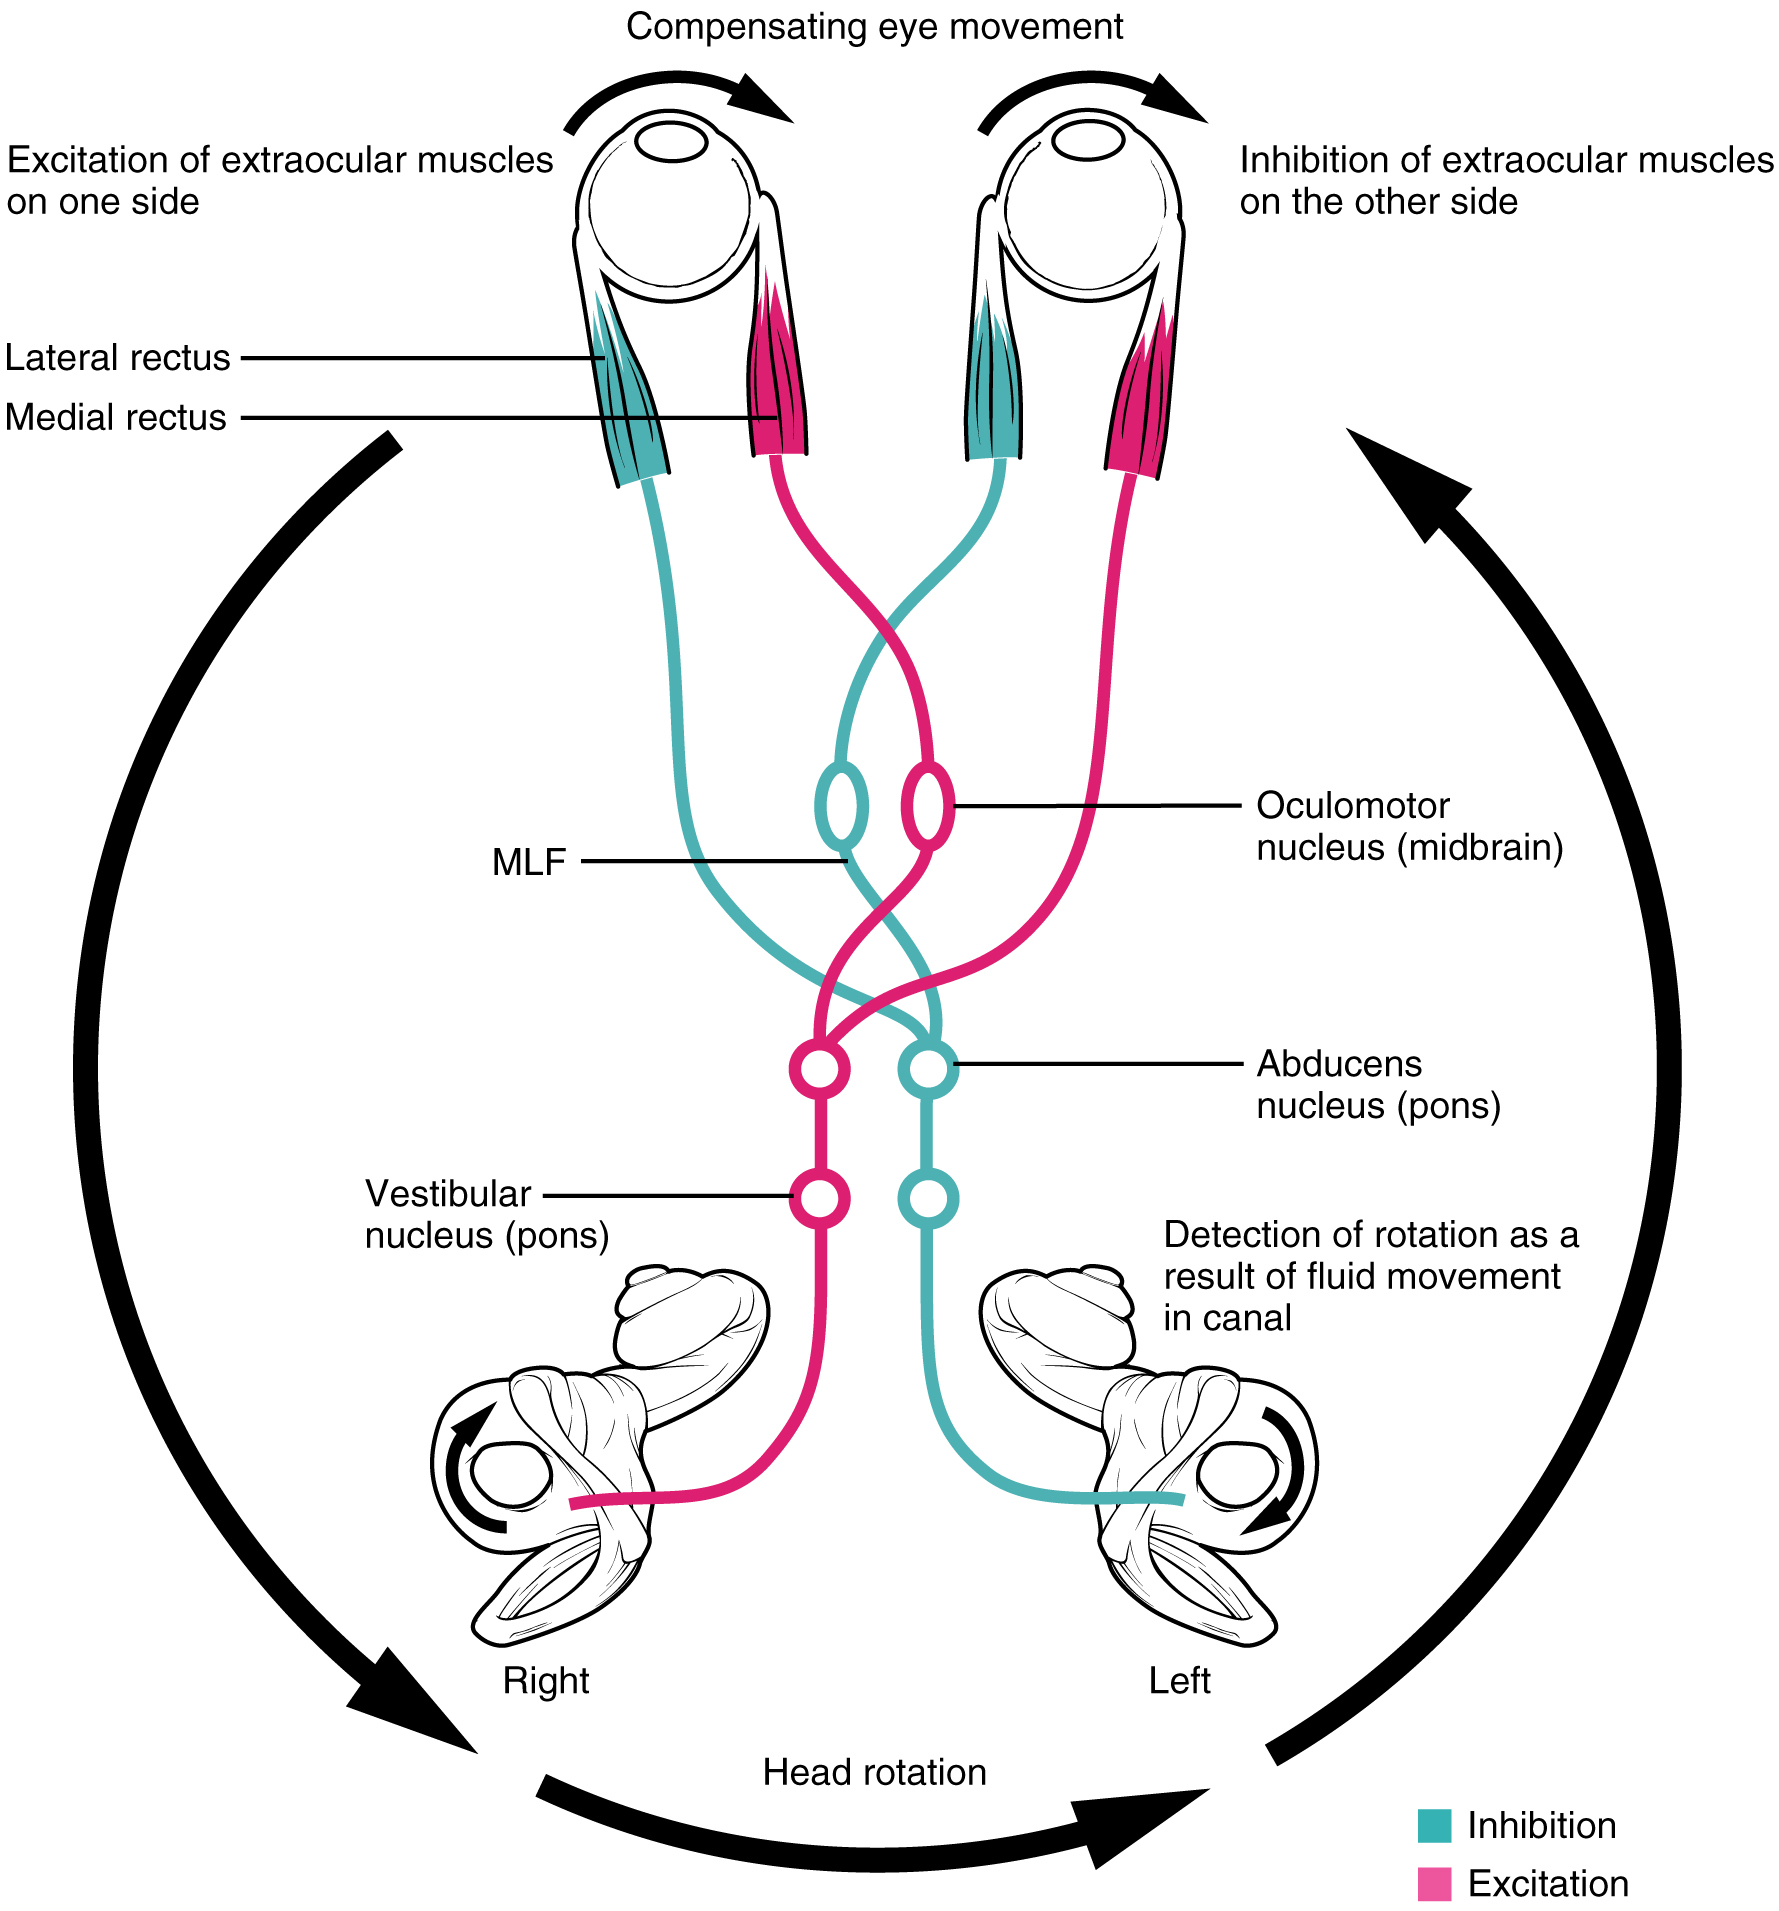 This diagram shows the compensating movement of the eyes in response to head rotation.